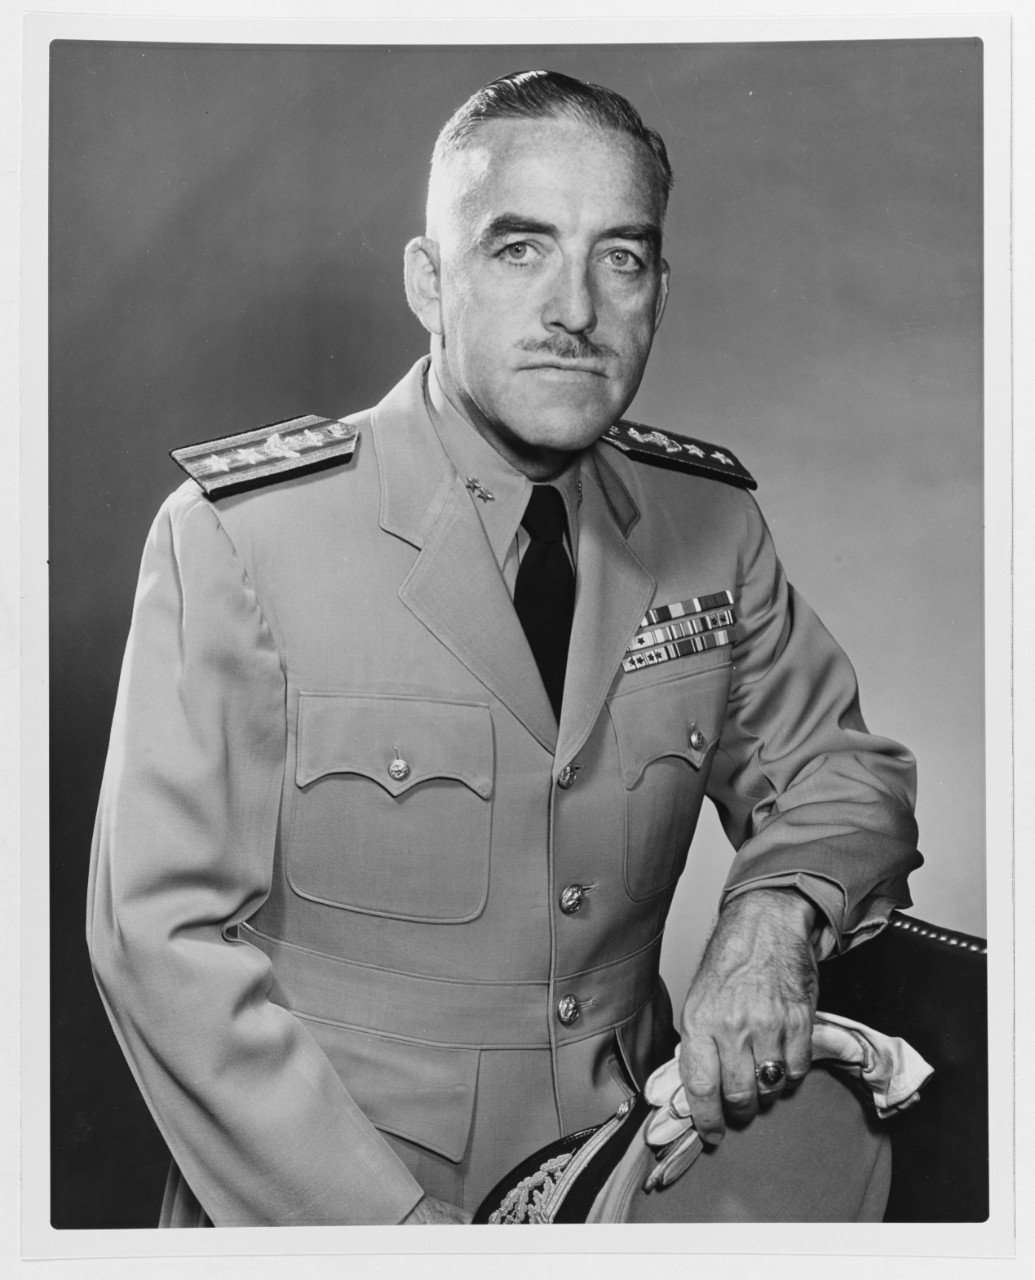 Rear Admiral Bartholomew W. Hogan, USN (Medical Corps)